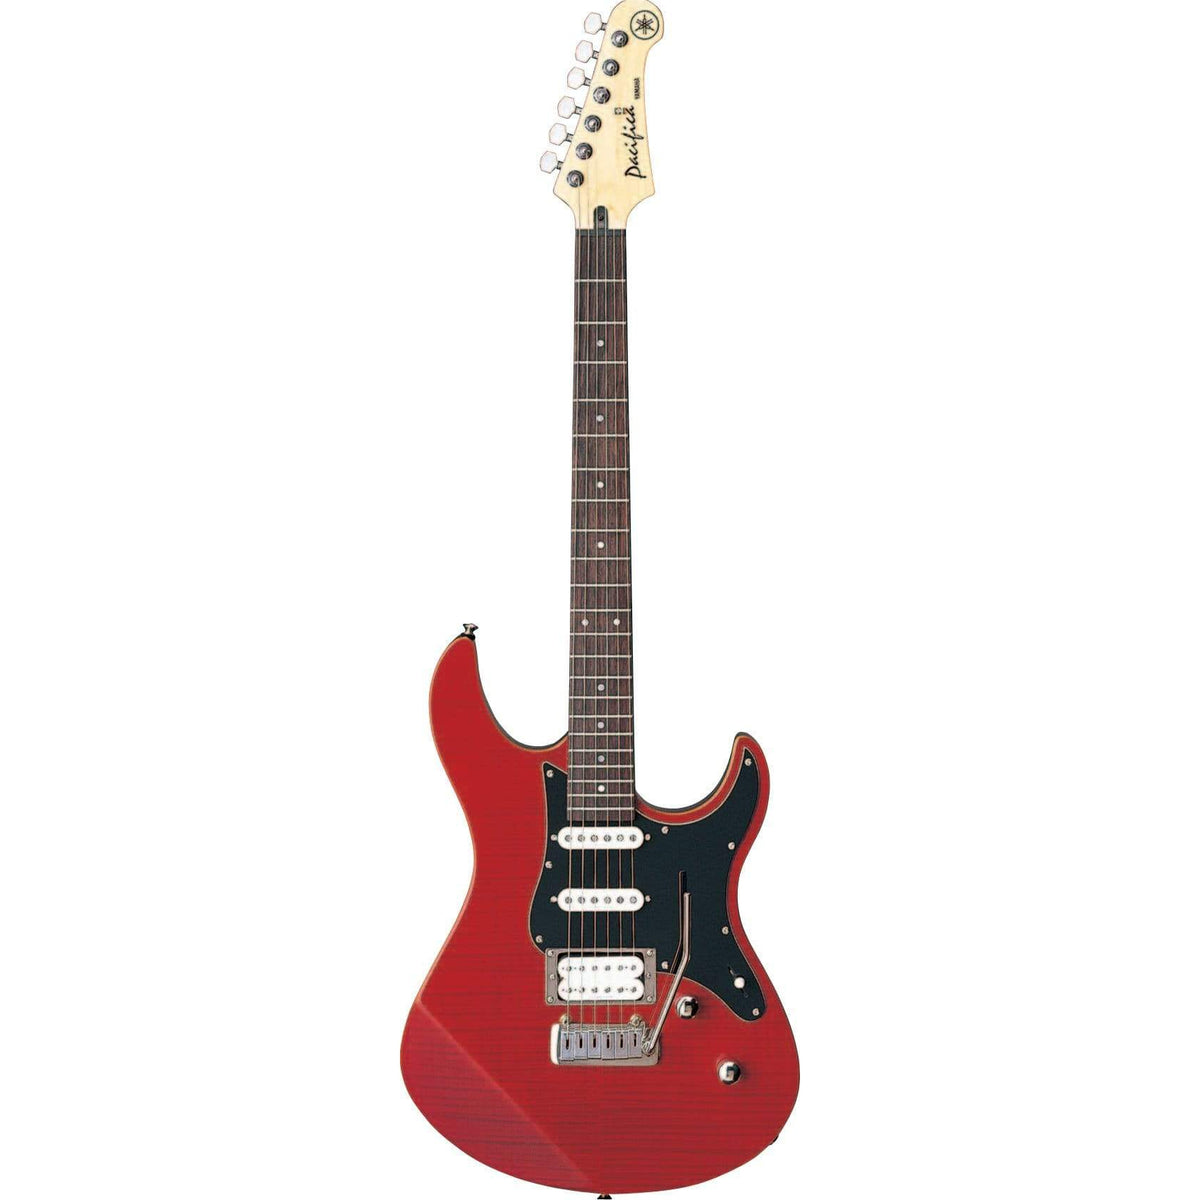 Yamaha Pacifica PAC812V Electric Guitar - (Old Violin Sunburst/Trans Black/Trans Red)